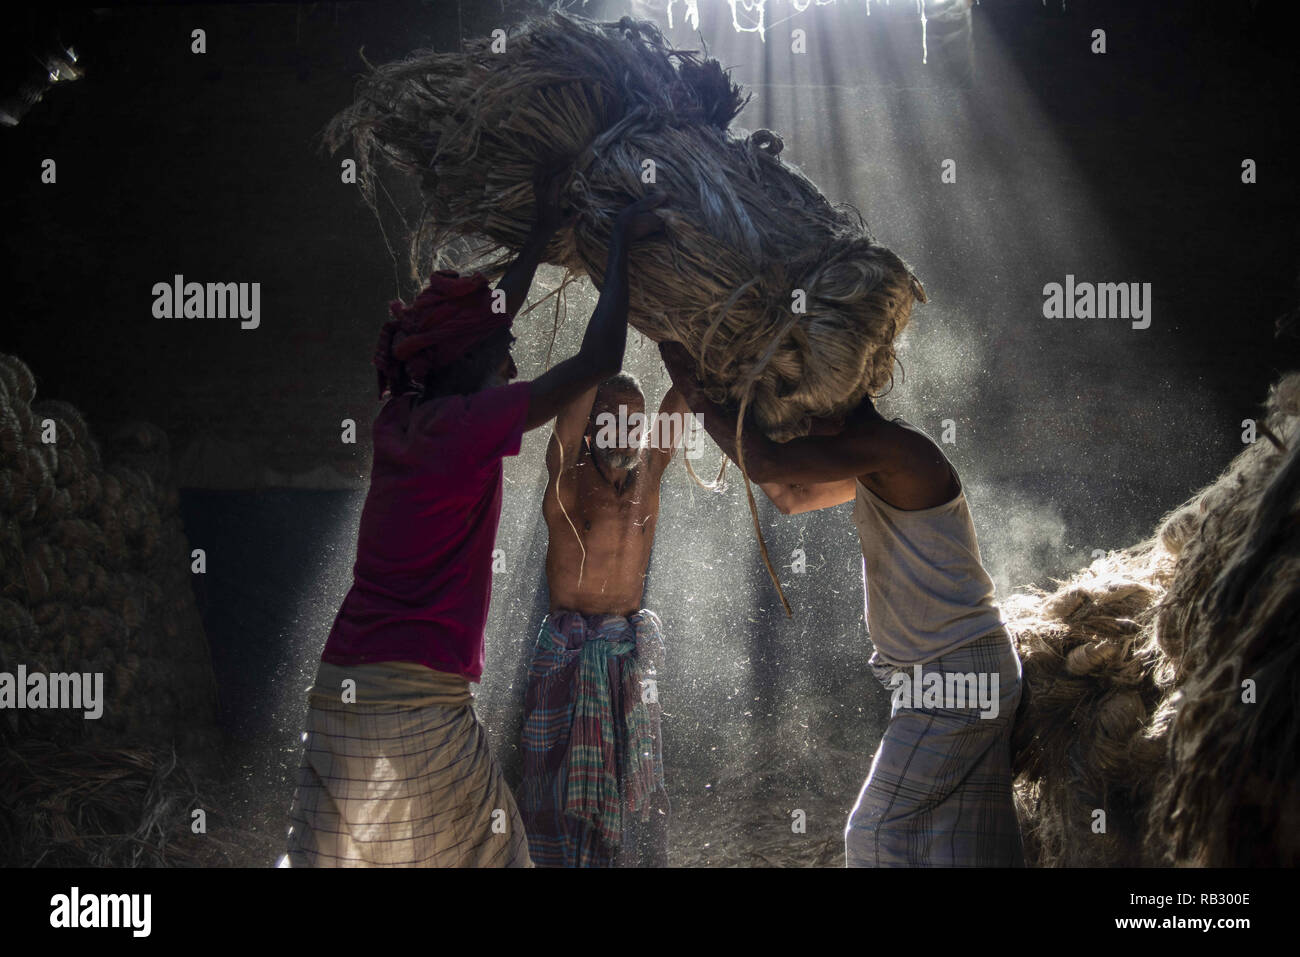 Narayanganj, Bangladesh. 6th Jan, 2019. Jute mill workers seen helping each other while working.Bangladesh is known for its Jute. In recent years Bangladesh and many other countries considered jute as the new possibility of replacing many daily goods and making bags out of jute to replace plastics. Credit: Ziaul Haque Oisharjh/SOPA Images/ZUMA Wire/Alamy Live News - Stock Image